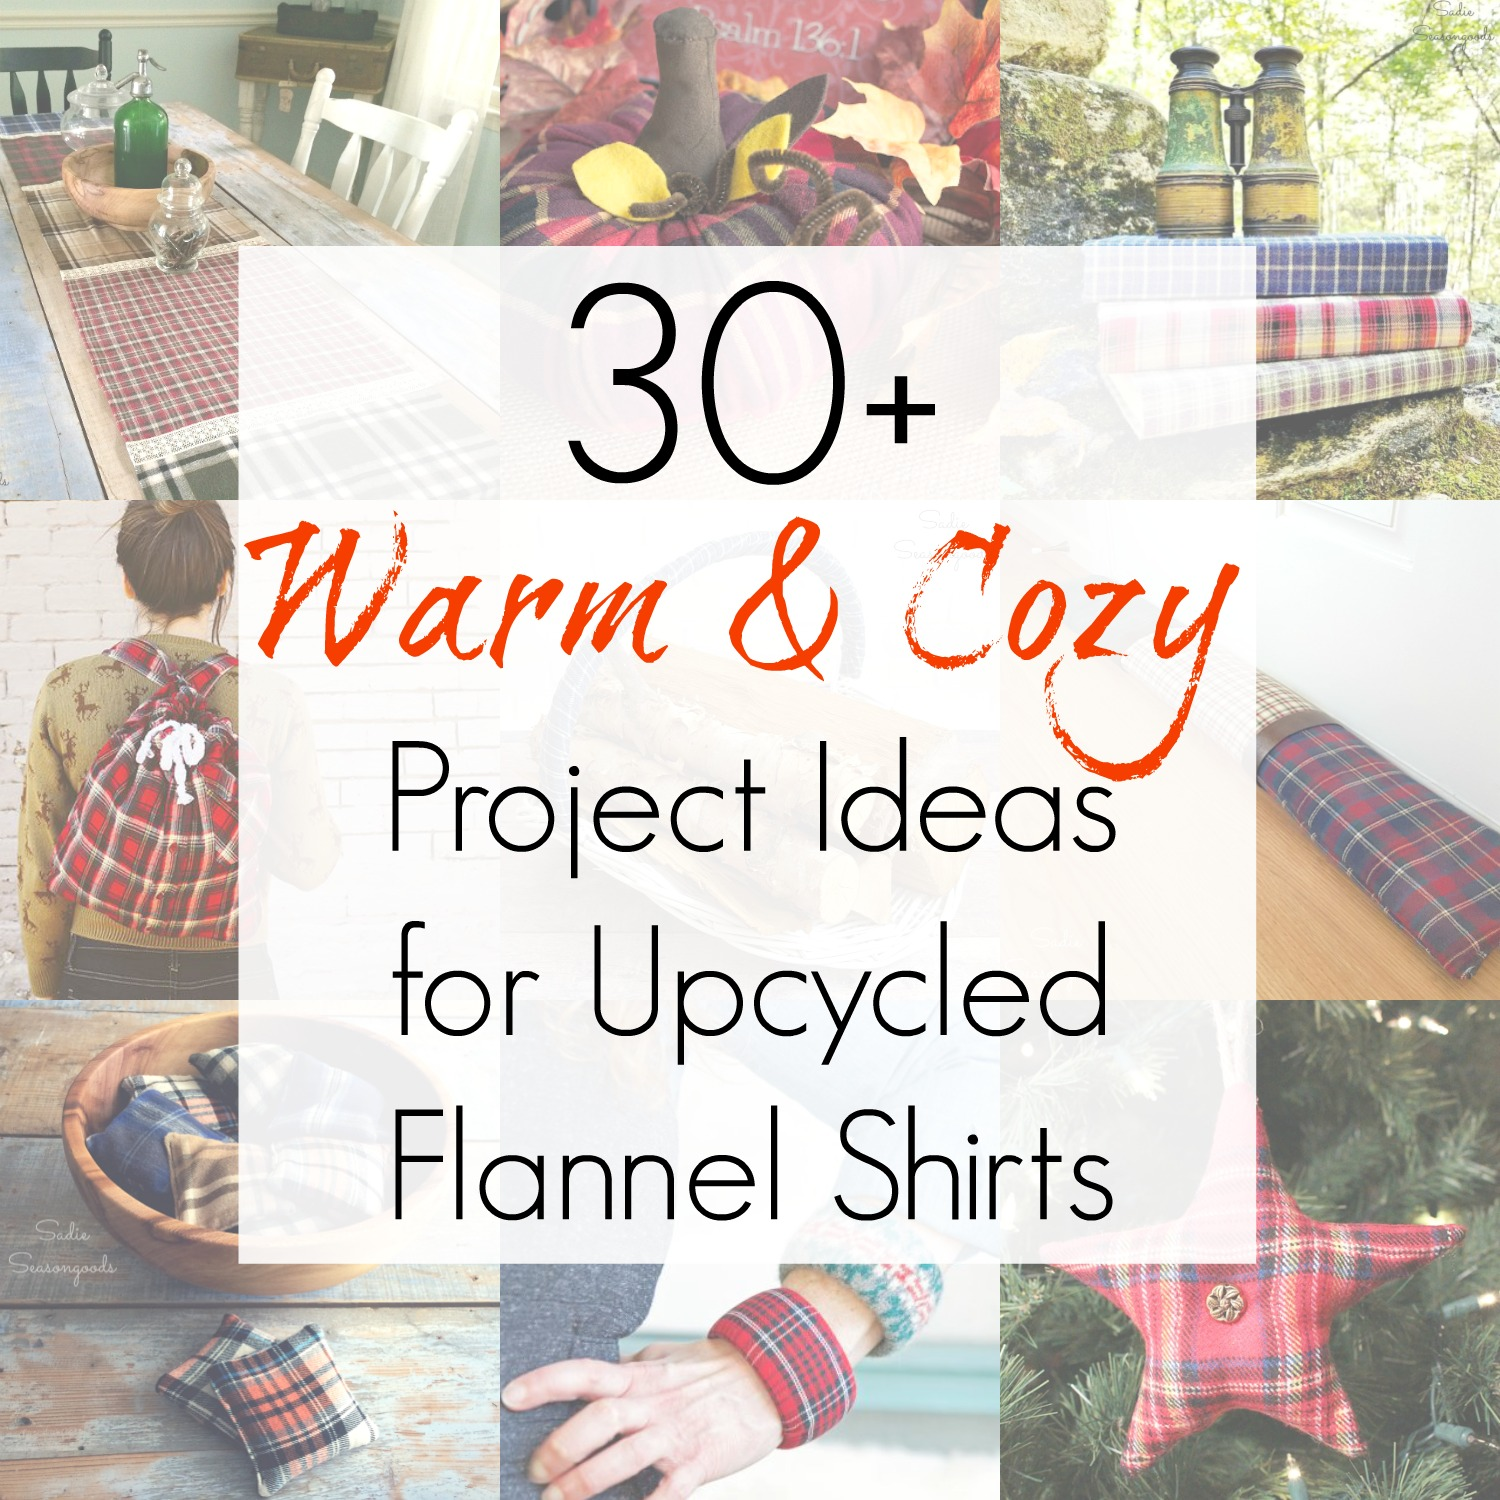 Upcycling ideas and upcycling clothes that use flannel shirts